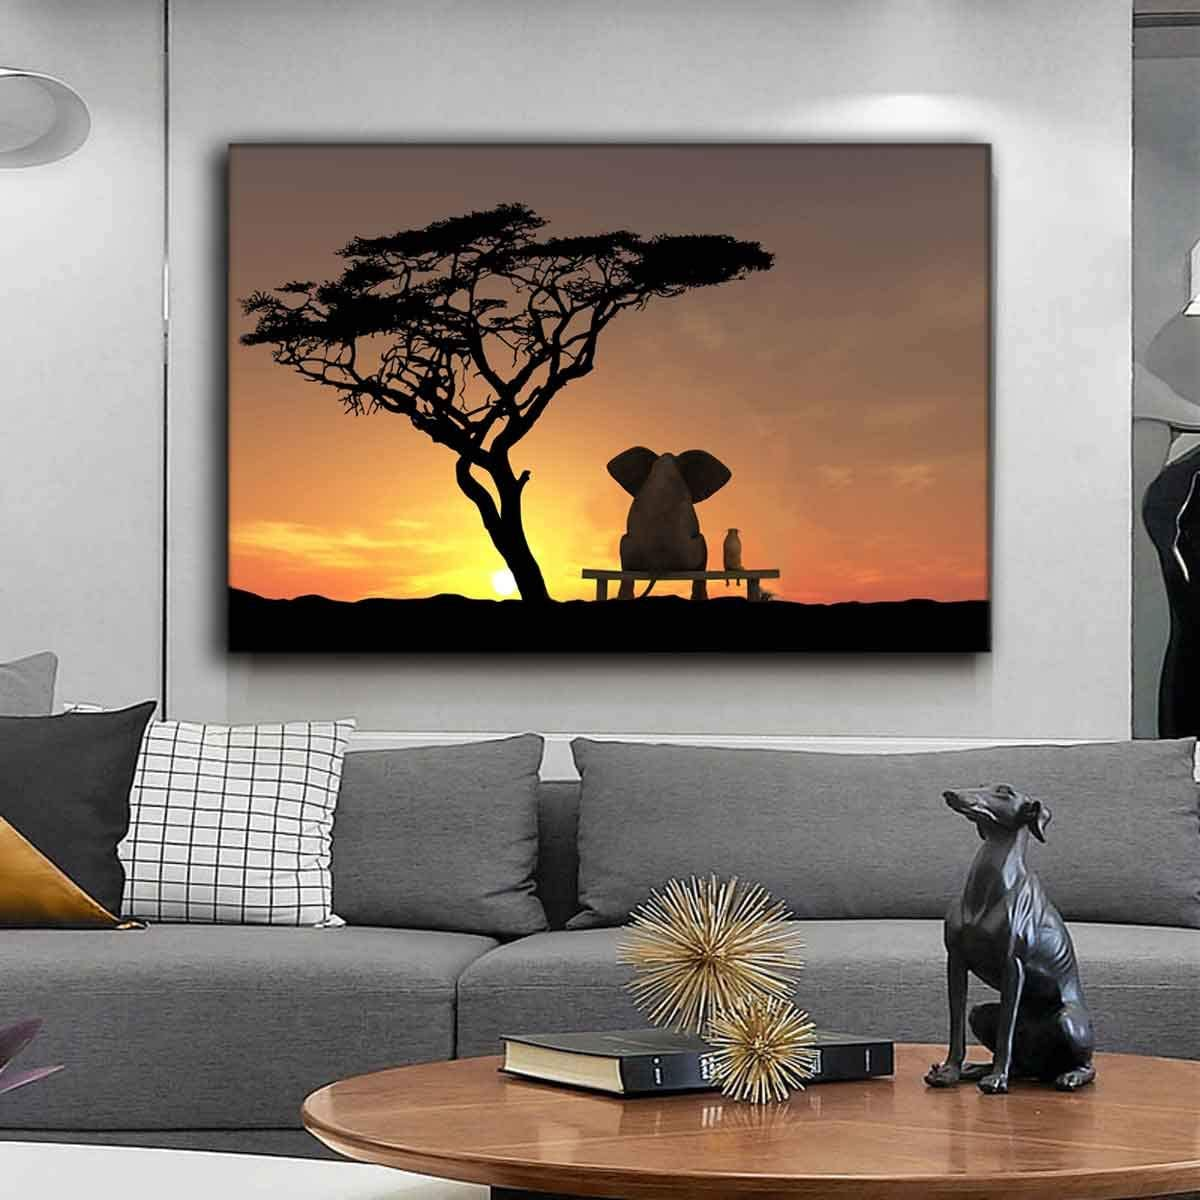 QH QH WURONG Animal Wall Art Funny Elephant Look at The Moon Before Sunset Canvas Prints with Wooden Framed Moon Poster for Living Room Kid Room Ready to Hang 12x18inchesx1pcs(Style A)